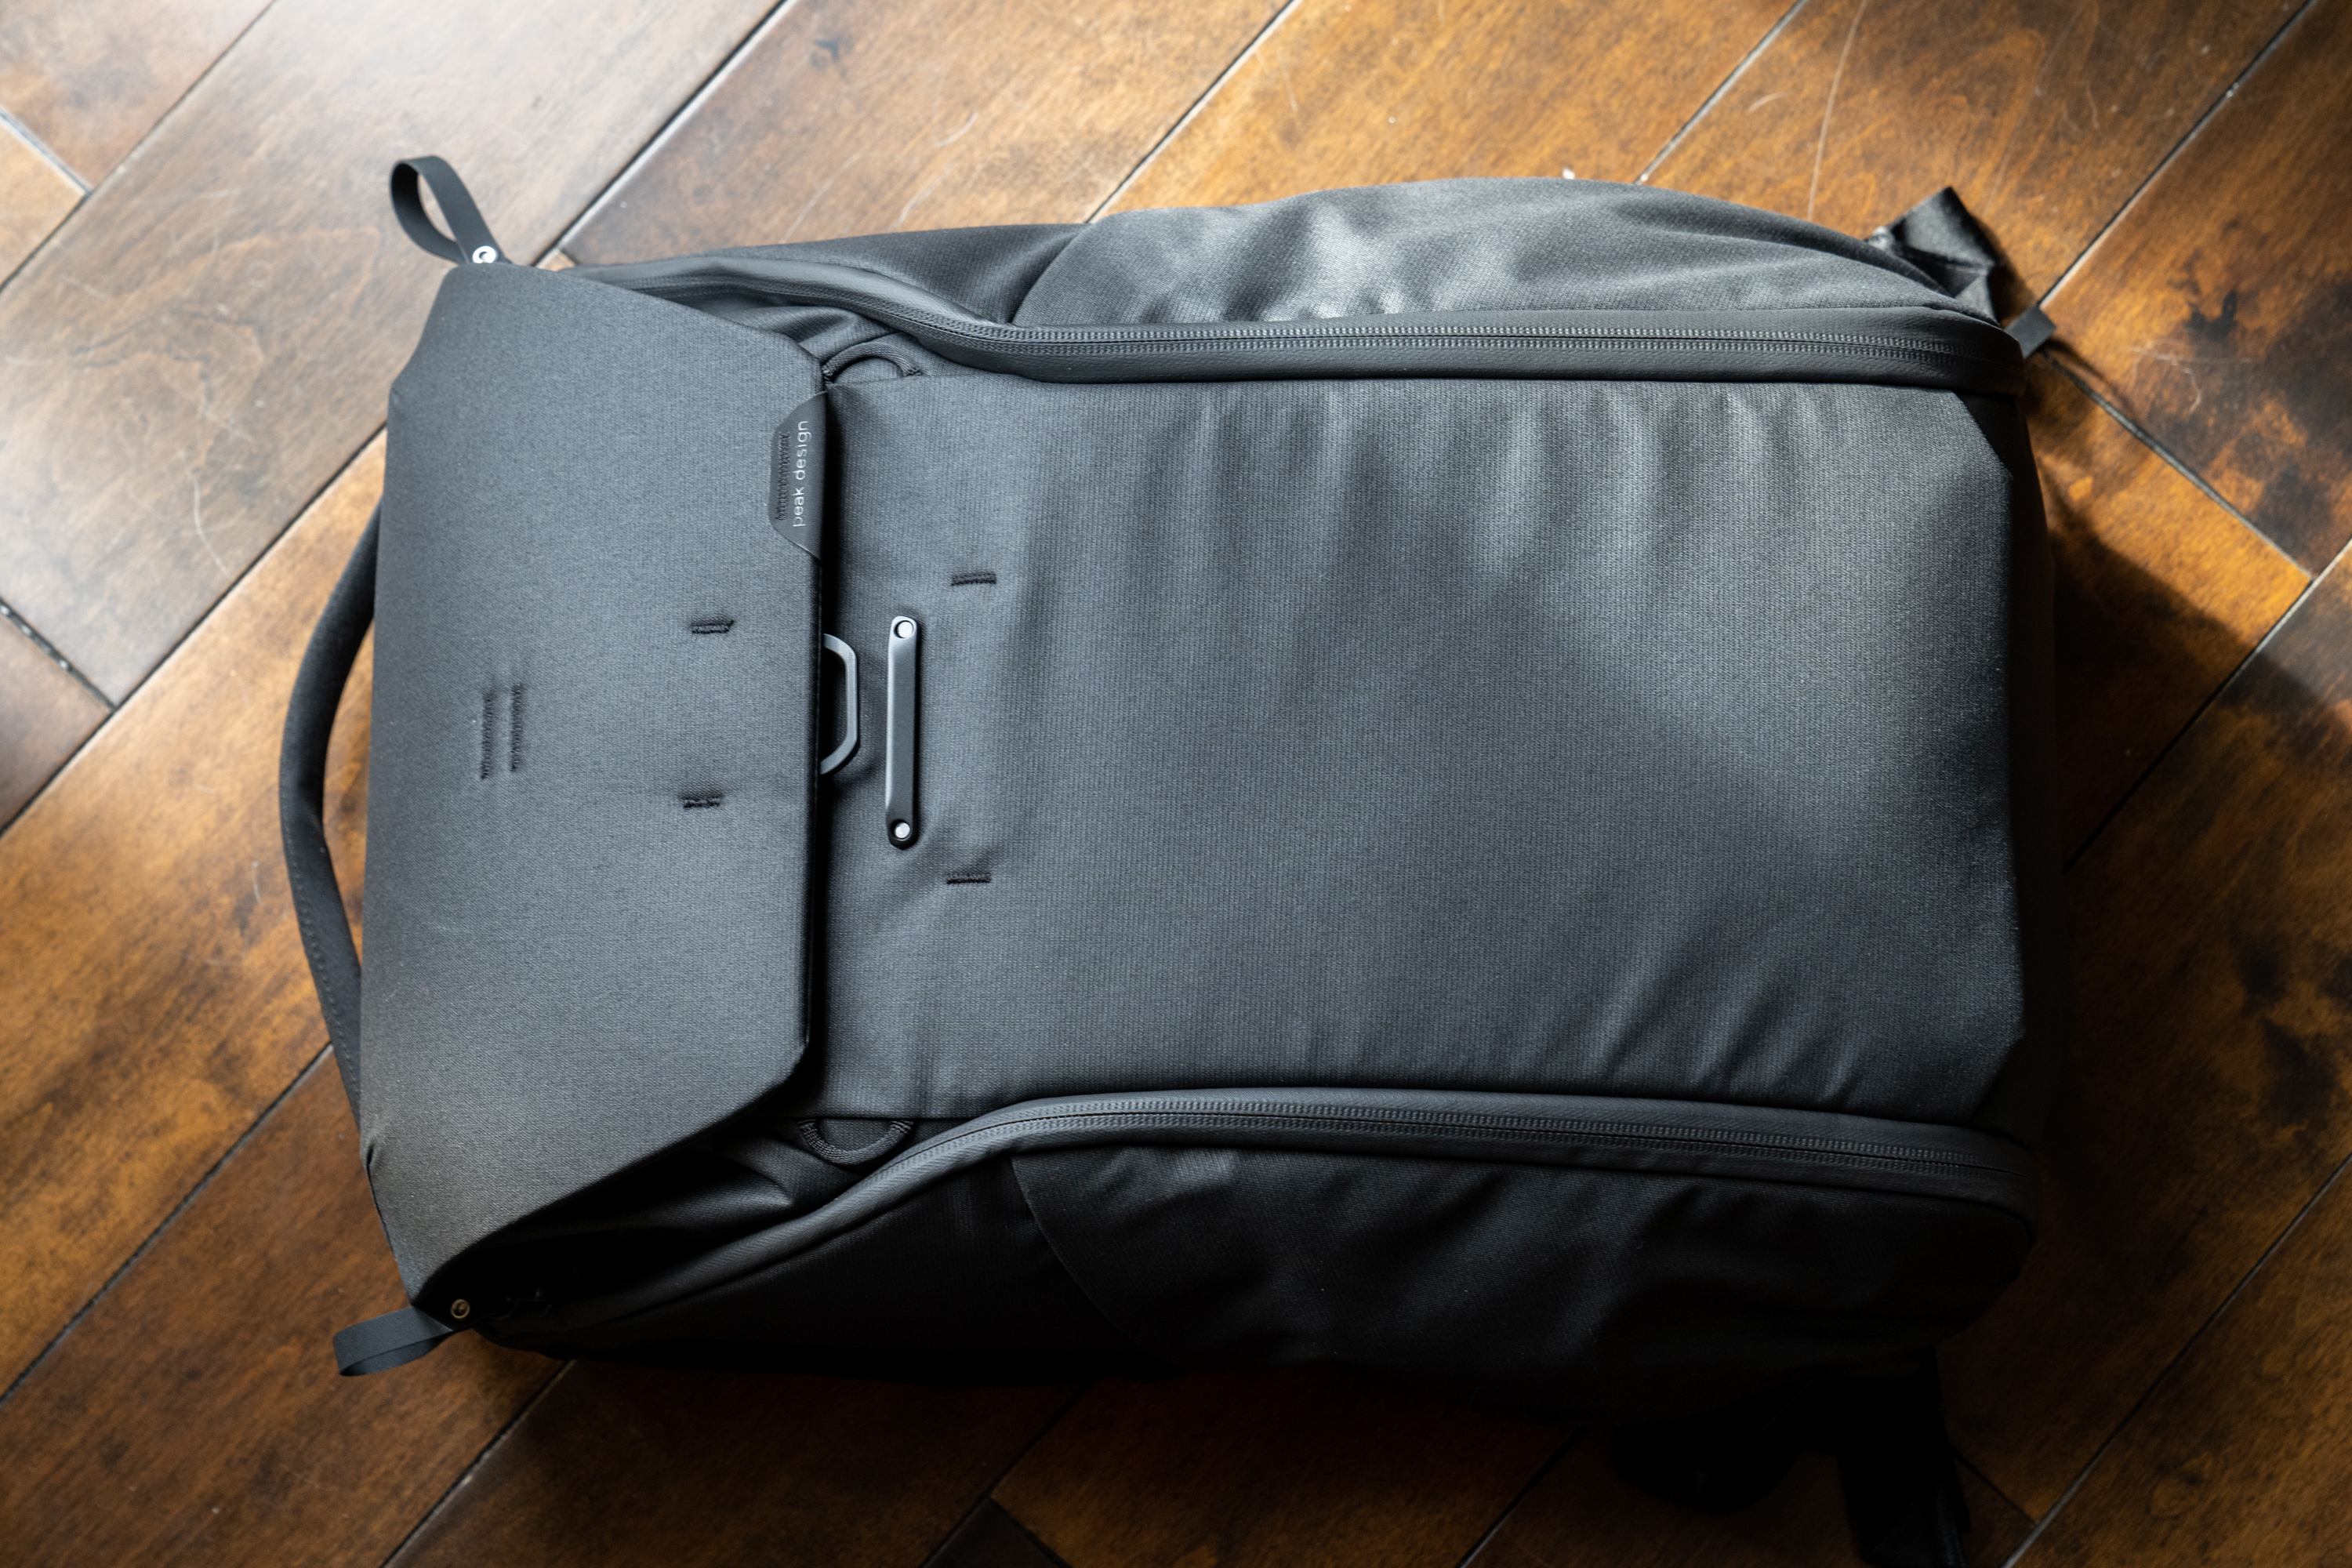 Peak Design's Everyday Backpack Zip and Everyday Backpack V2 are top-notch photo and travel bags